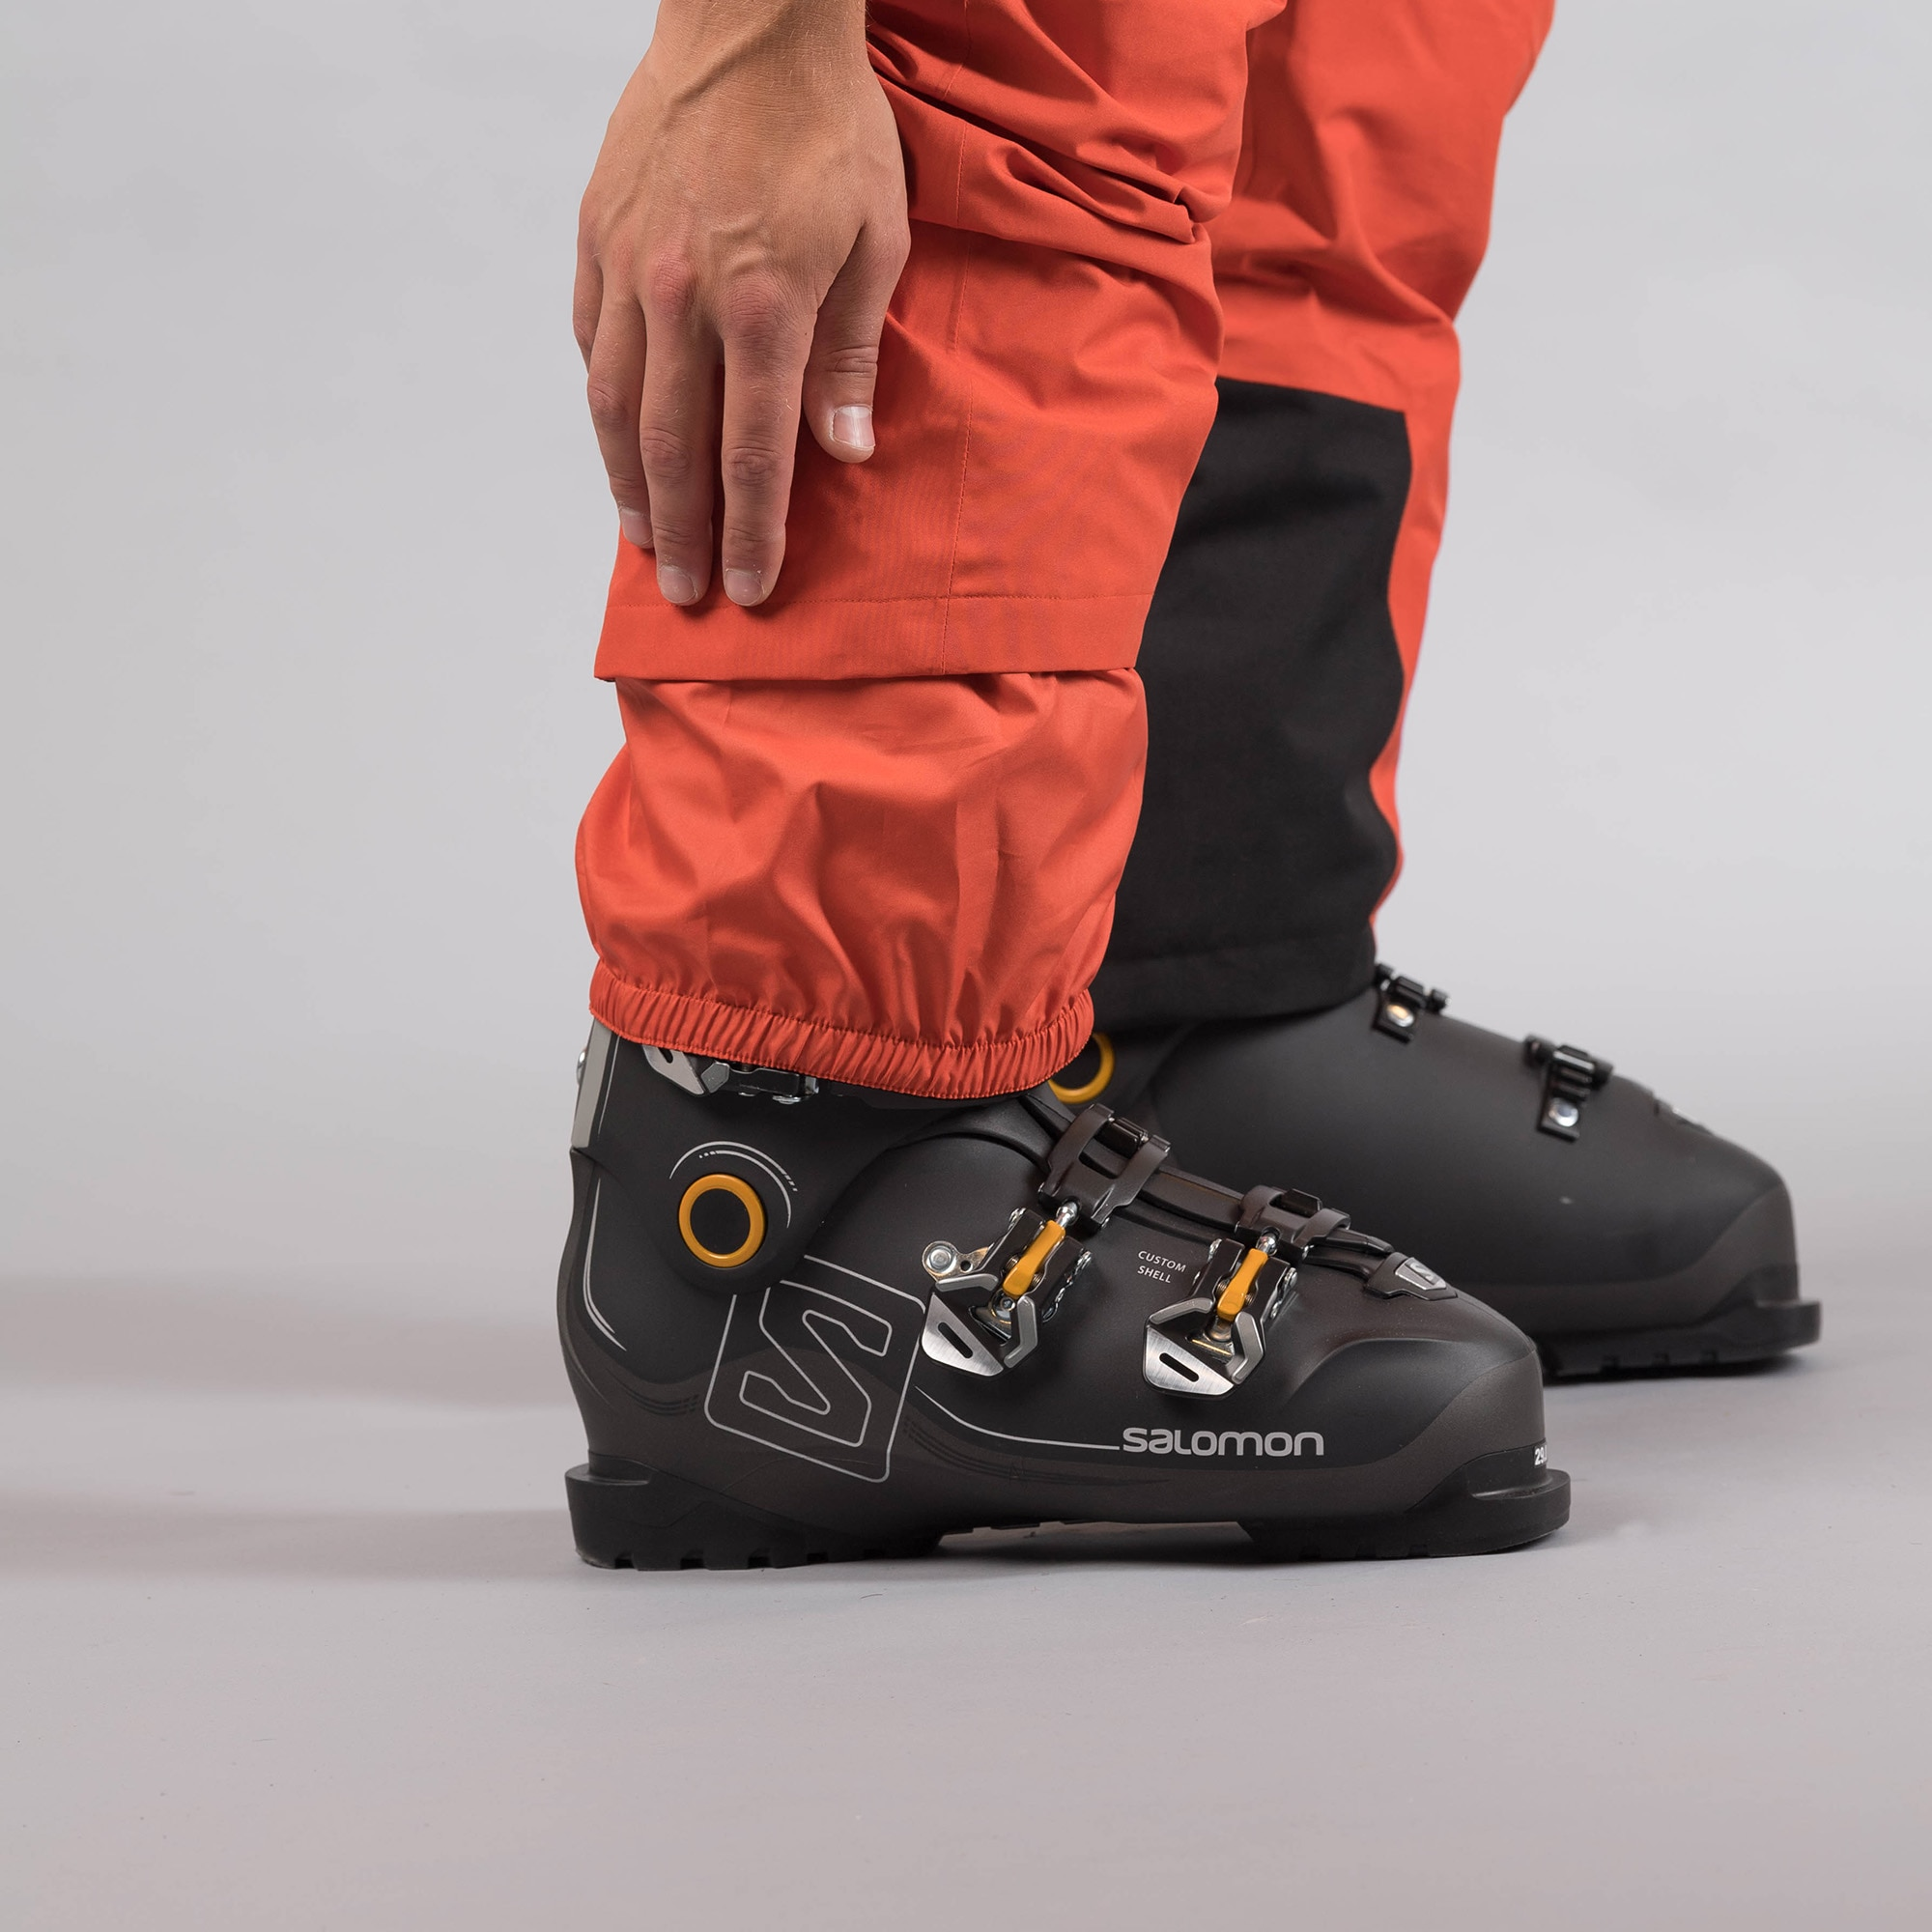 Stranda Insulated Pants